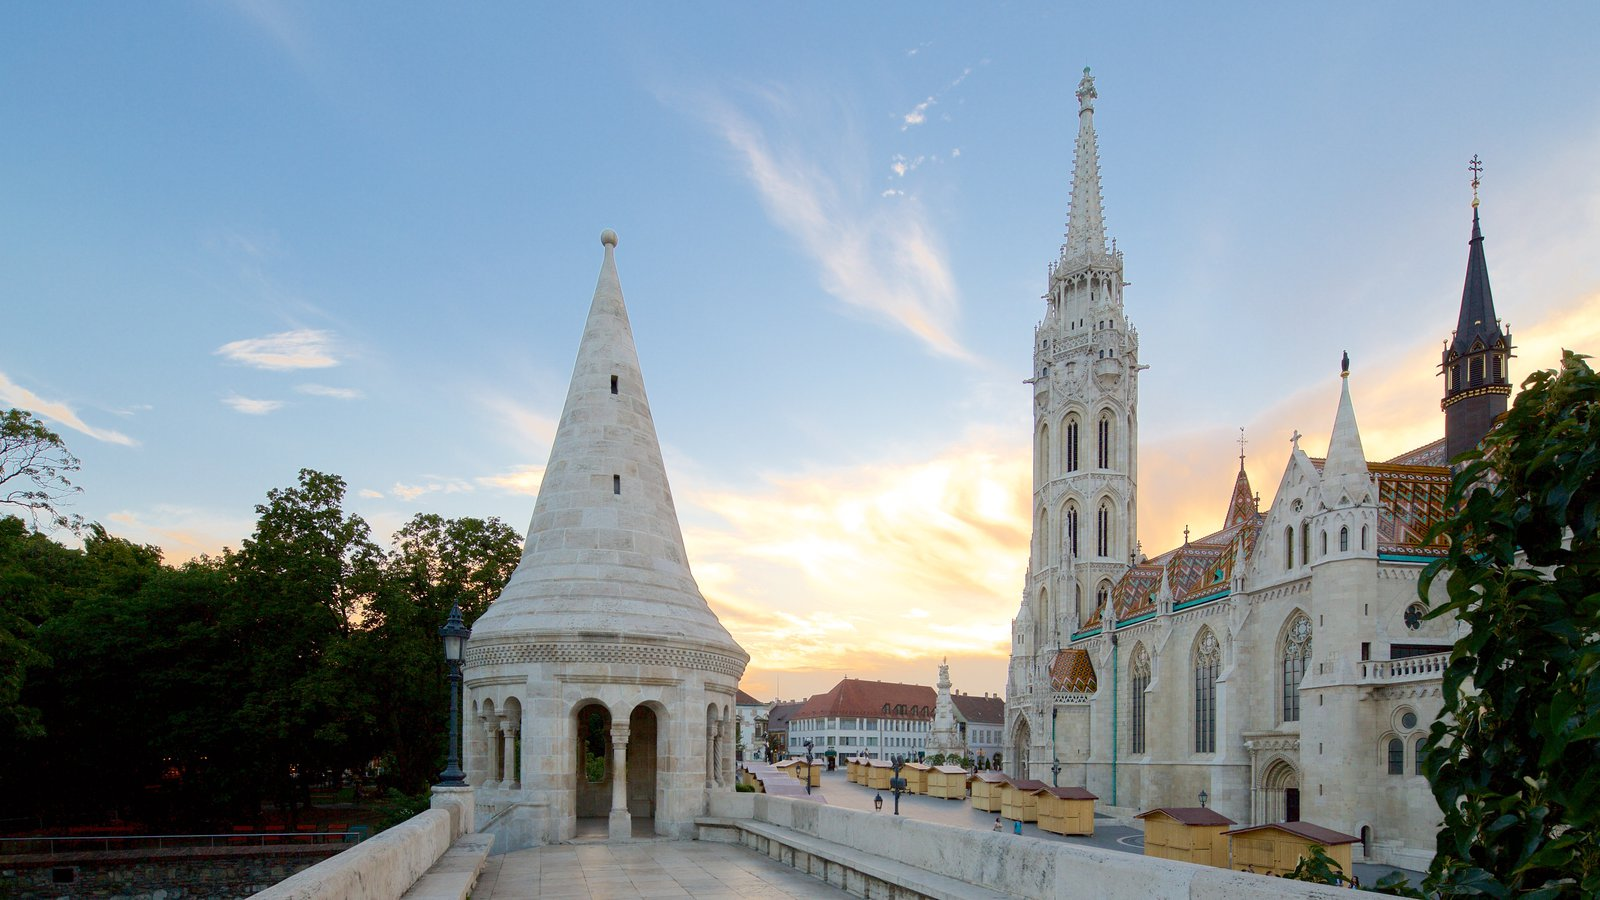 Matthias Church showing heritage architecture, a church or cathedral and a sunset